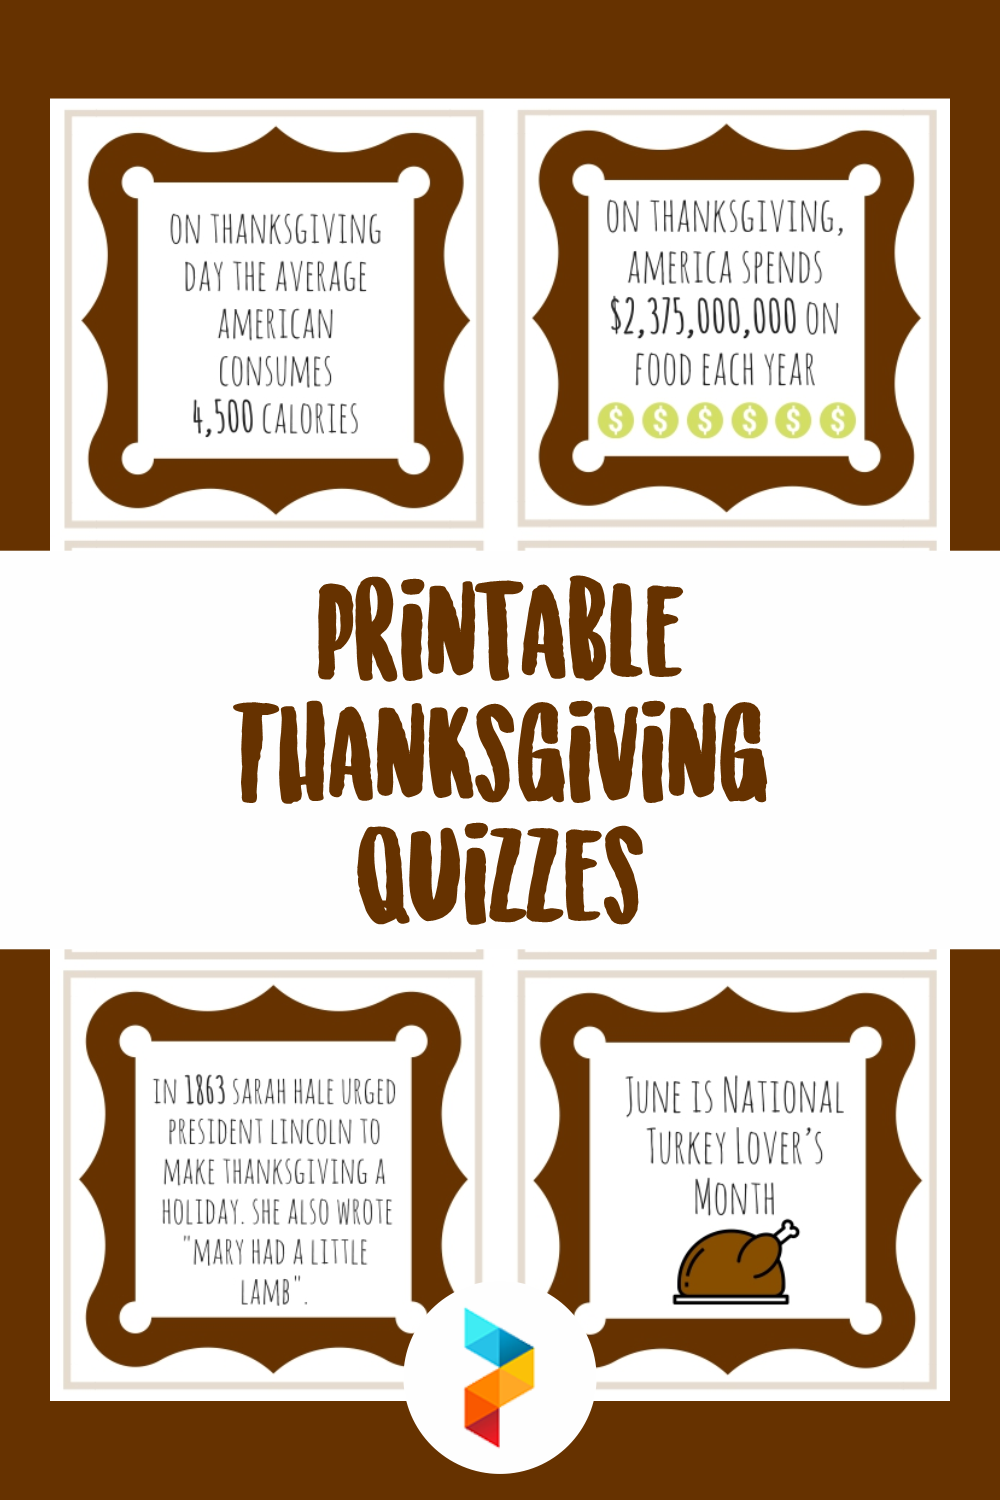 Printable Thanksgiving Quizzes